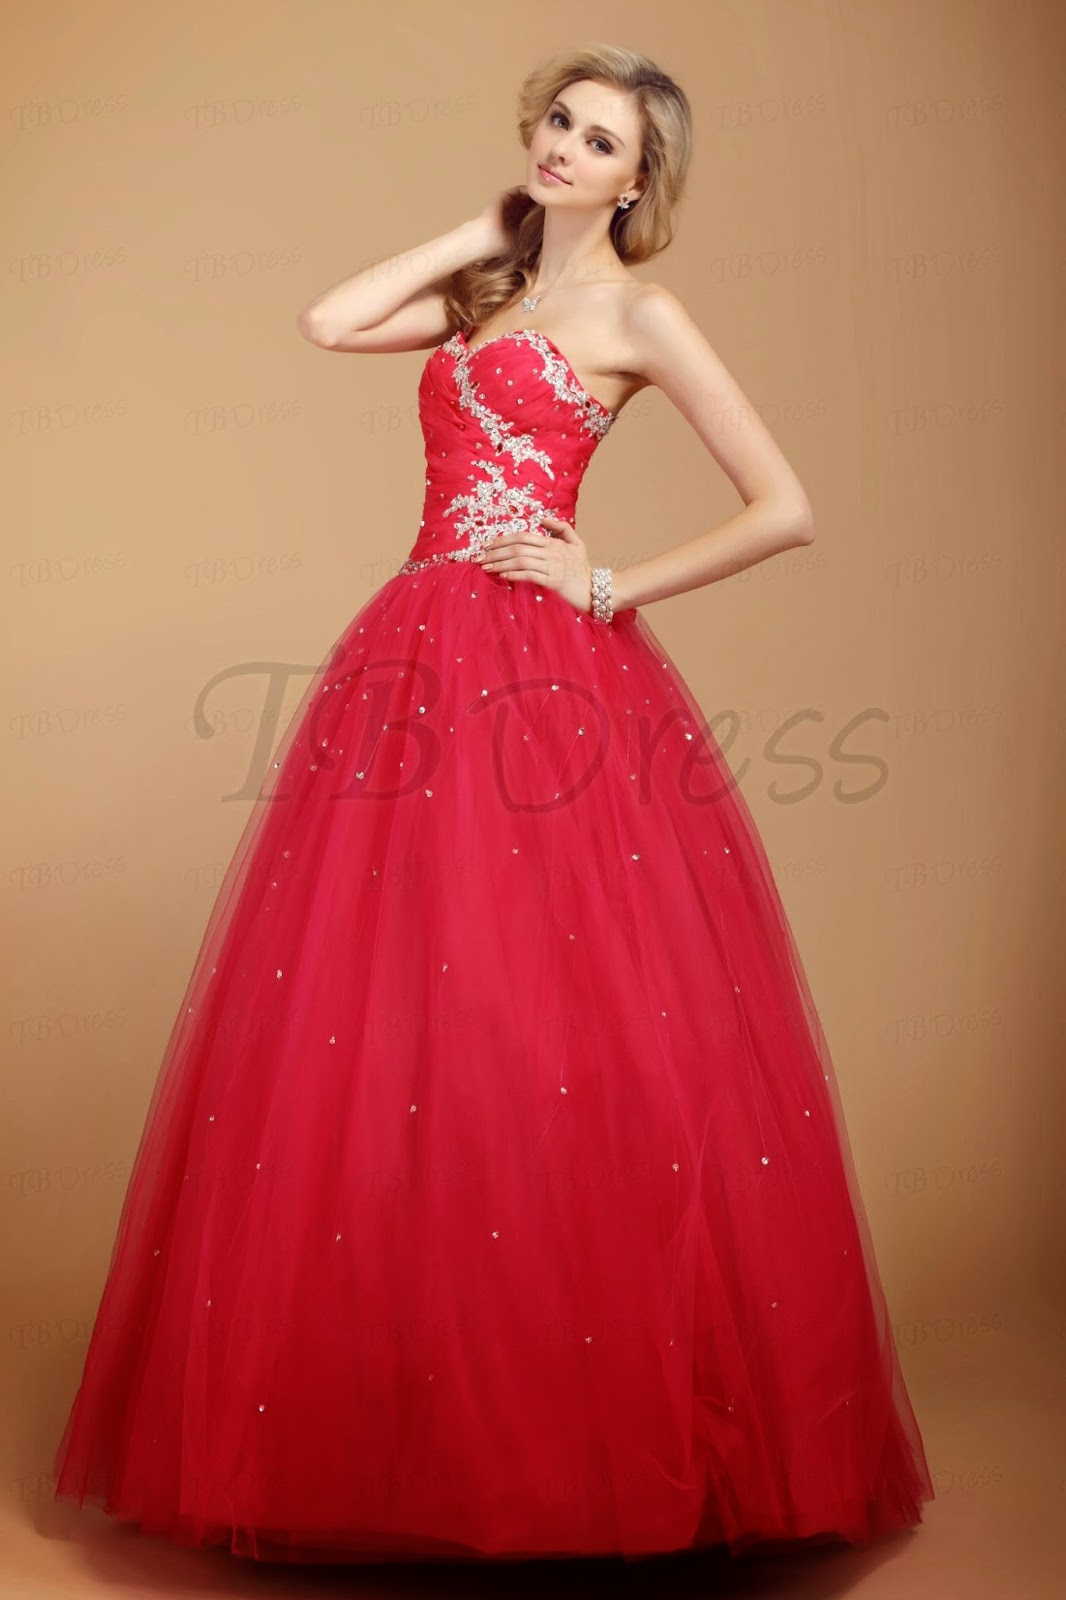 http://www.tbdress.com/product/Floor-Length-One-Shoulder-Dashas-Prom-Quinceanera-Ball-Gown-Dresses-8883076.html